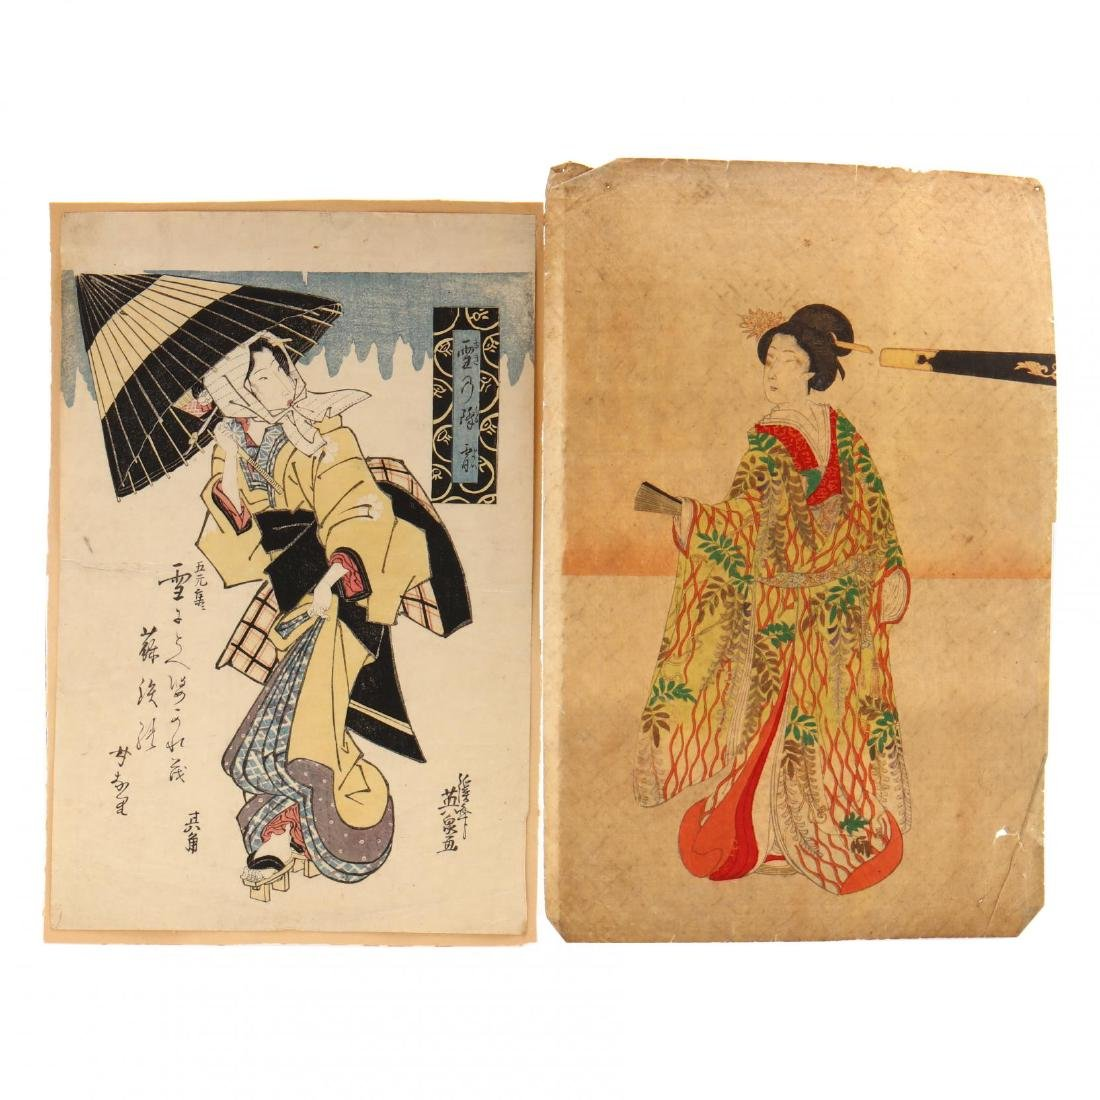 A Group of Japanese Woodblock Prints - 2